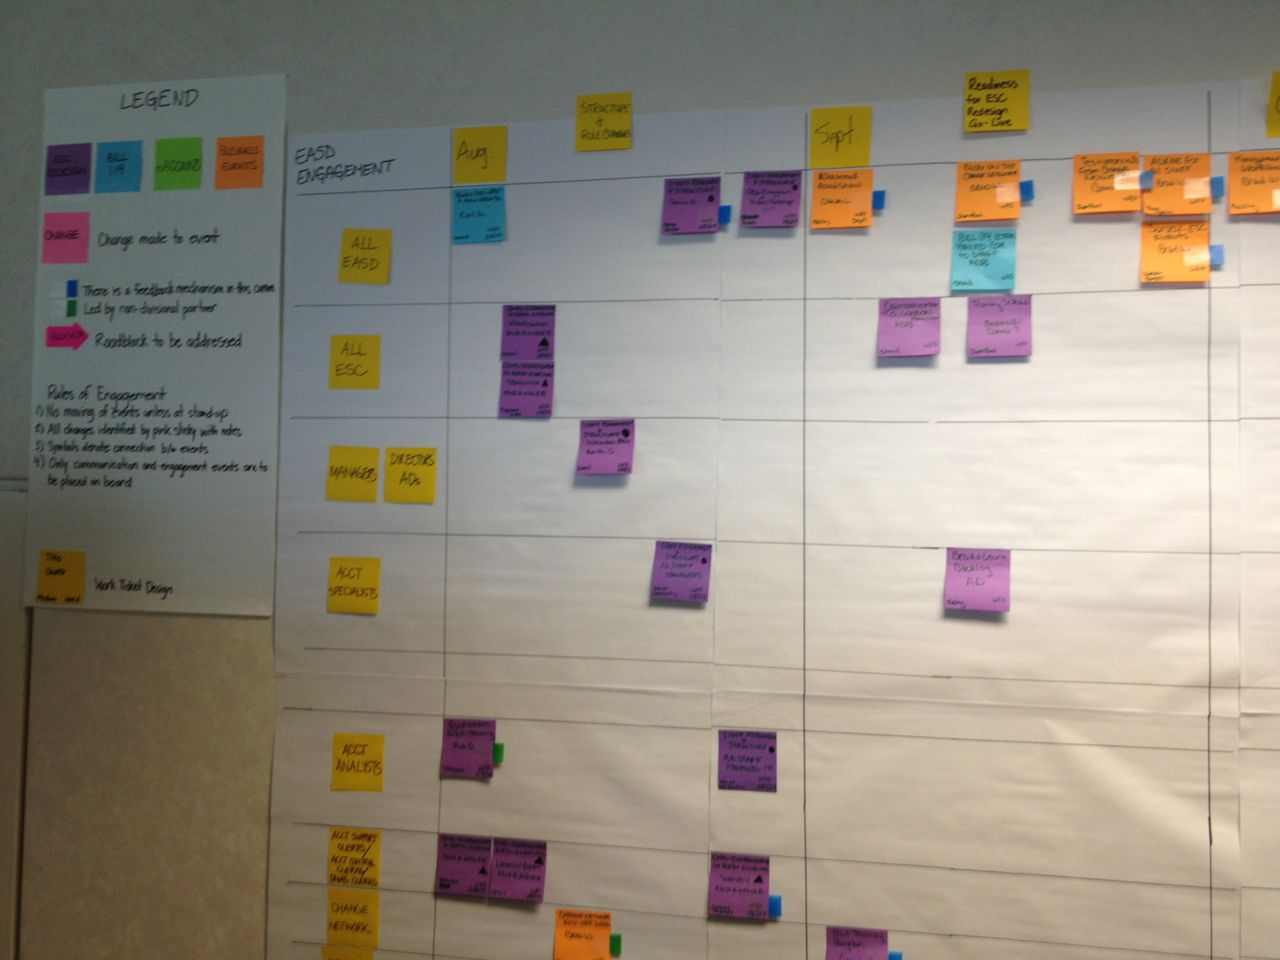 Managing a Program with Kanban